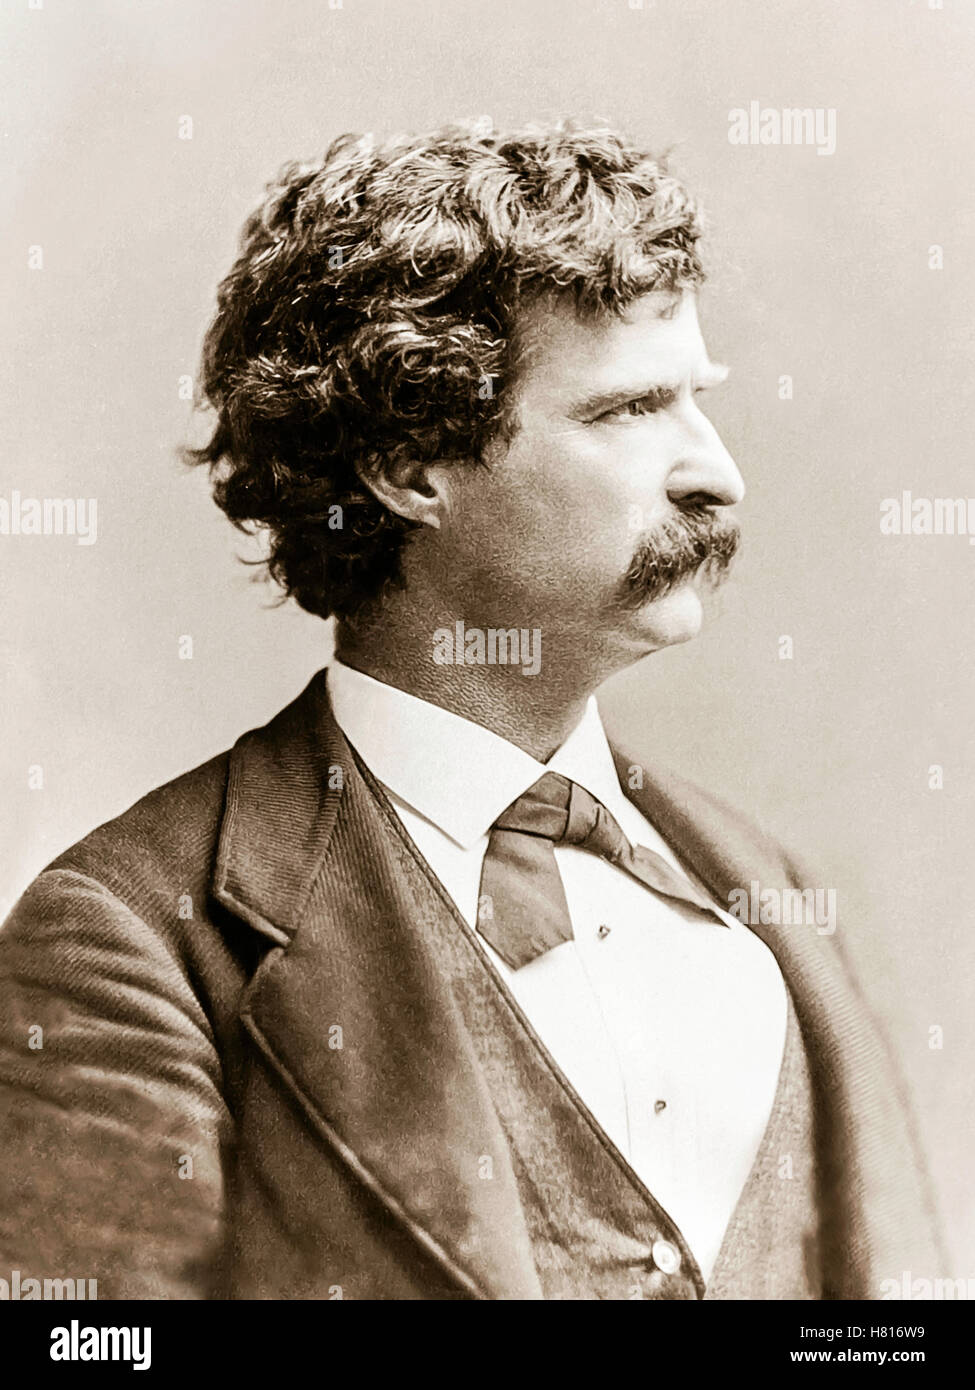 """Mark Twain (1835-1910) photograph from 1869, the same year """"The Innocents Abroad, or The New Pilgrims' Progress"""" Stock Photo"""